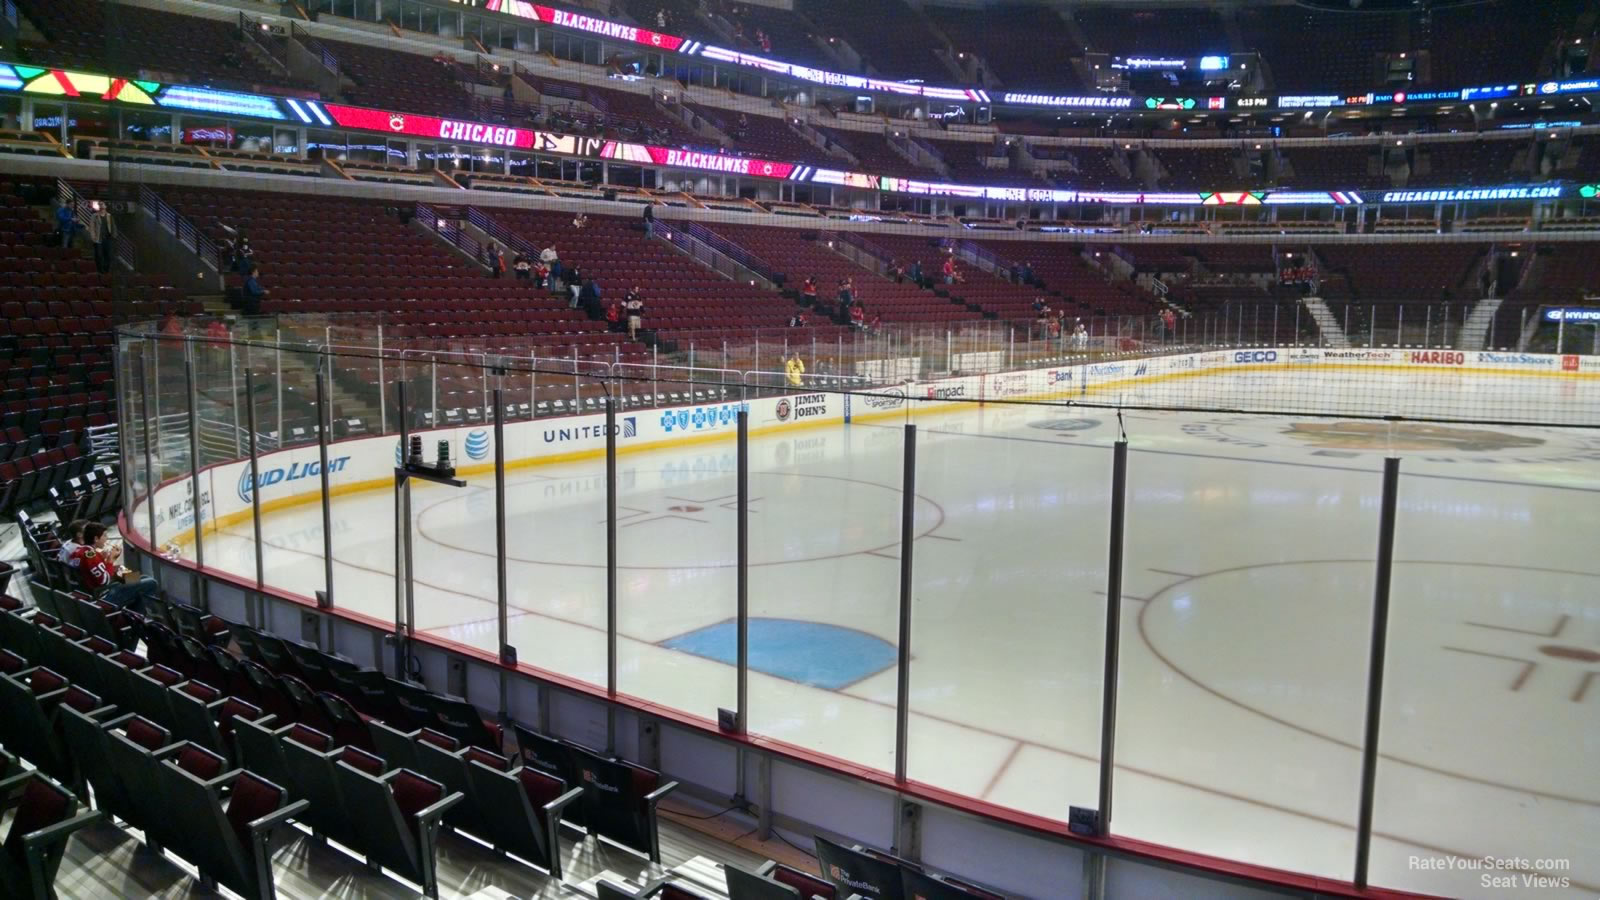 center united section row seat blackhawks level seating nhl sections rateyourseats hockey ice chicago behind seats